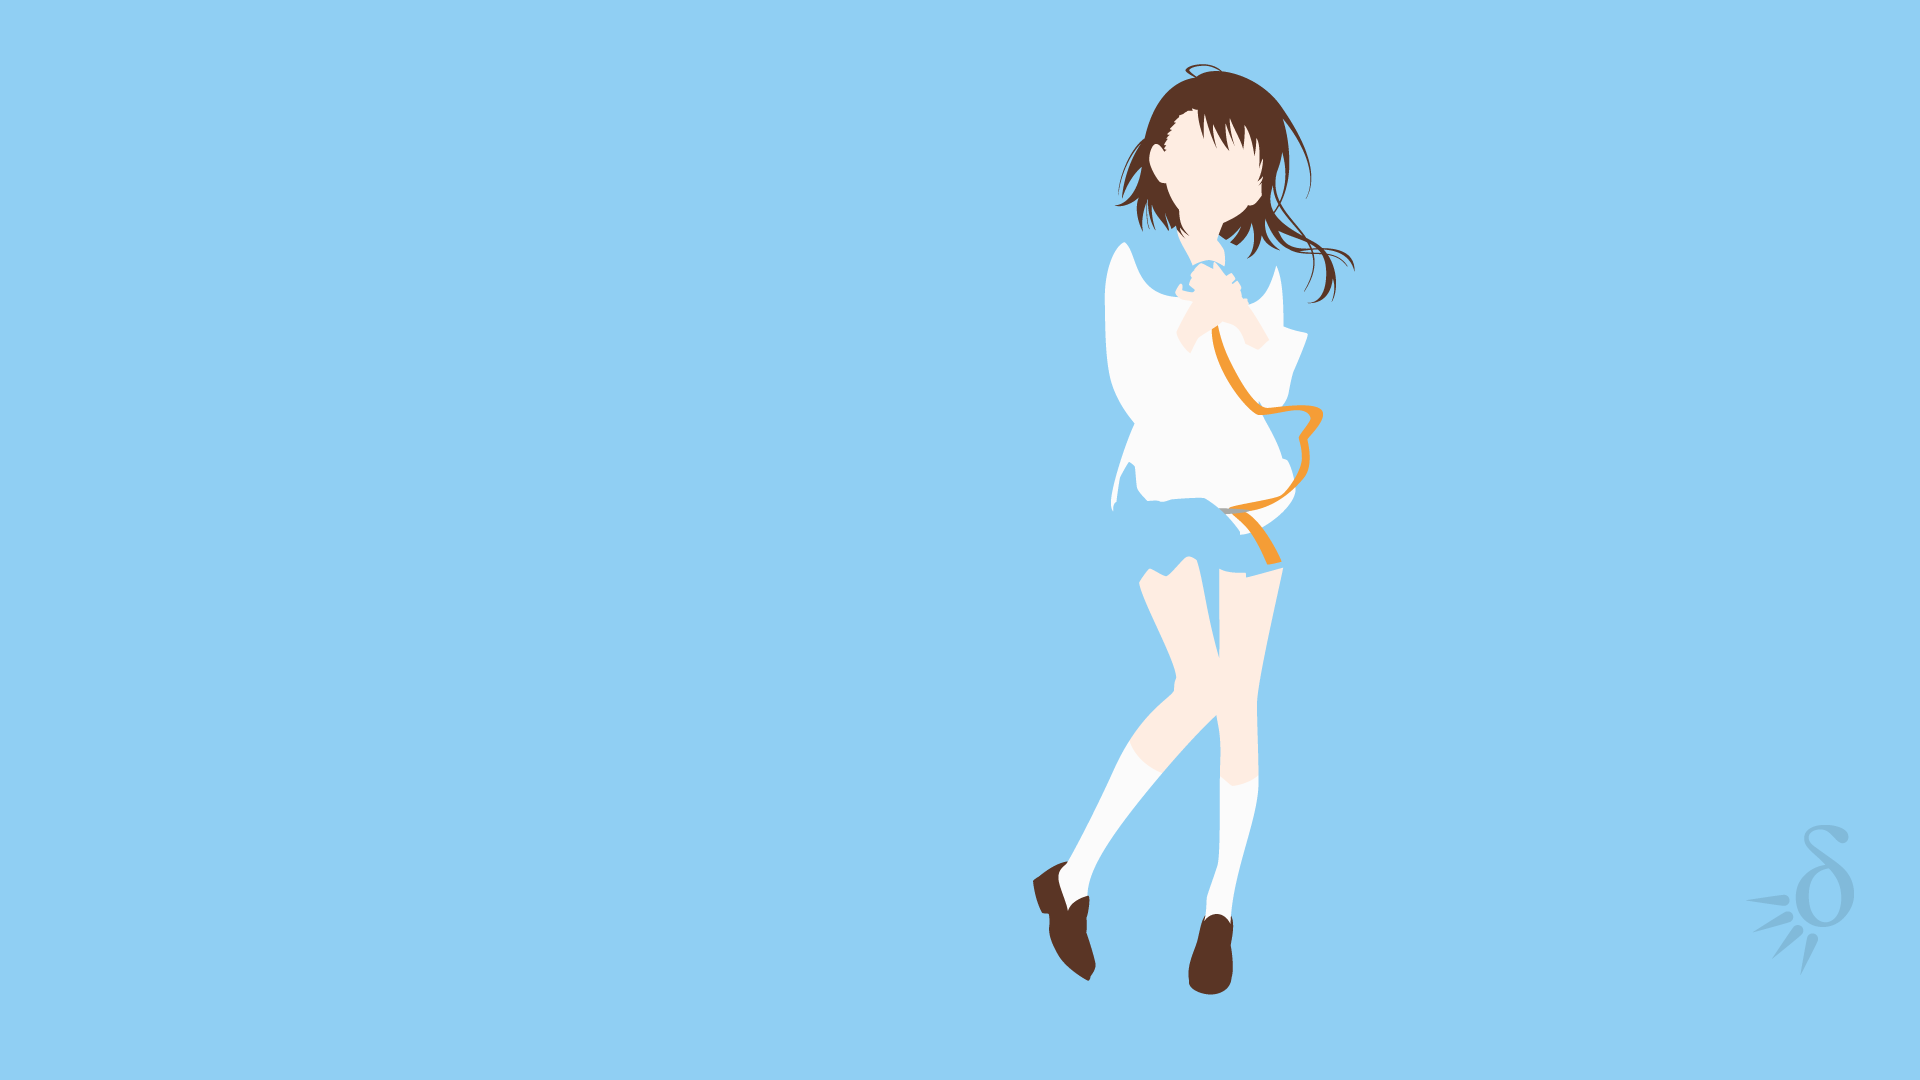 Cool Anime Vectors Backgrounds